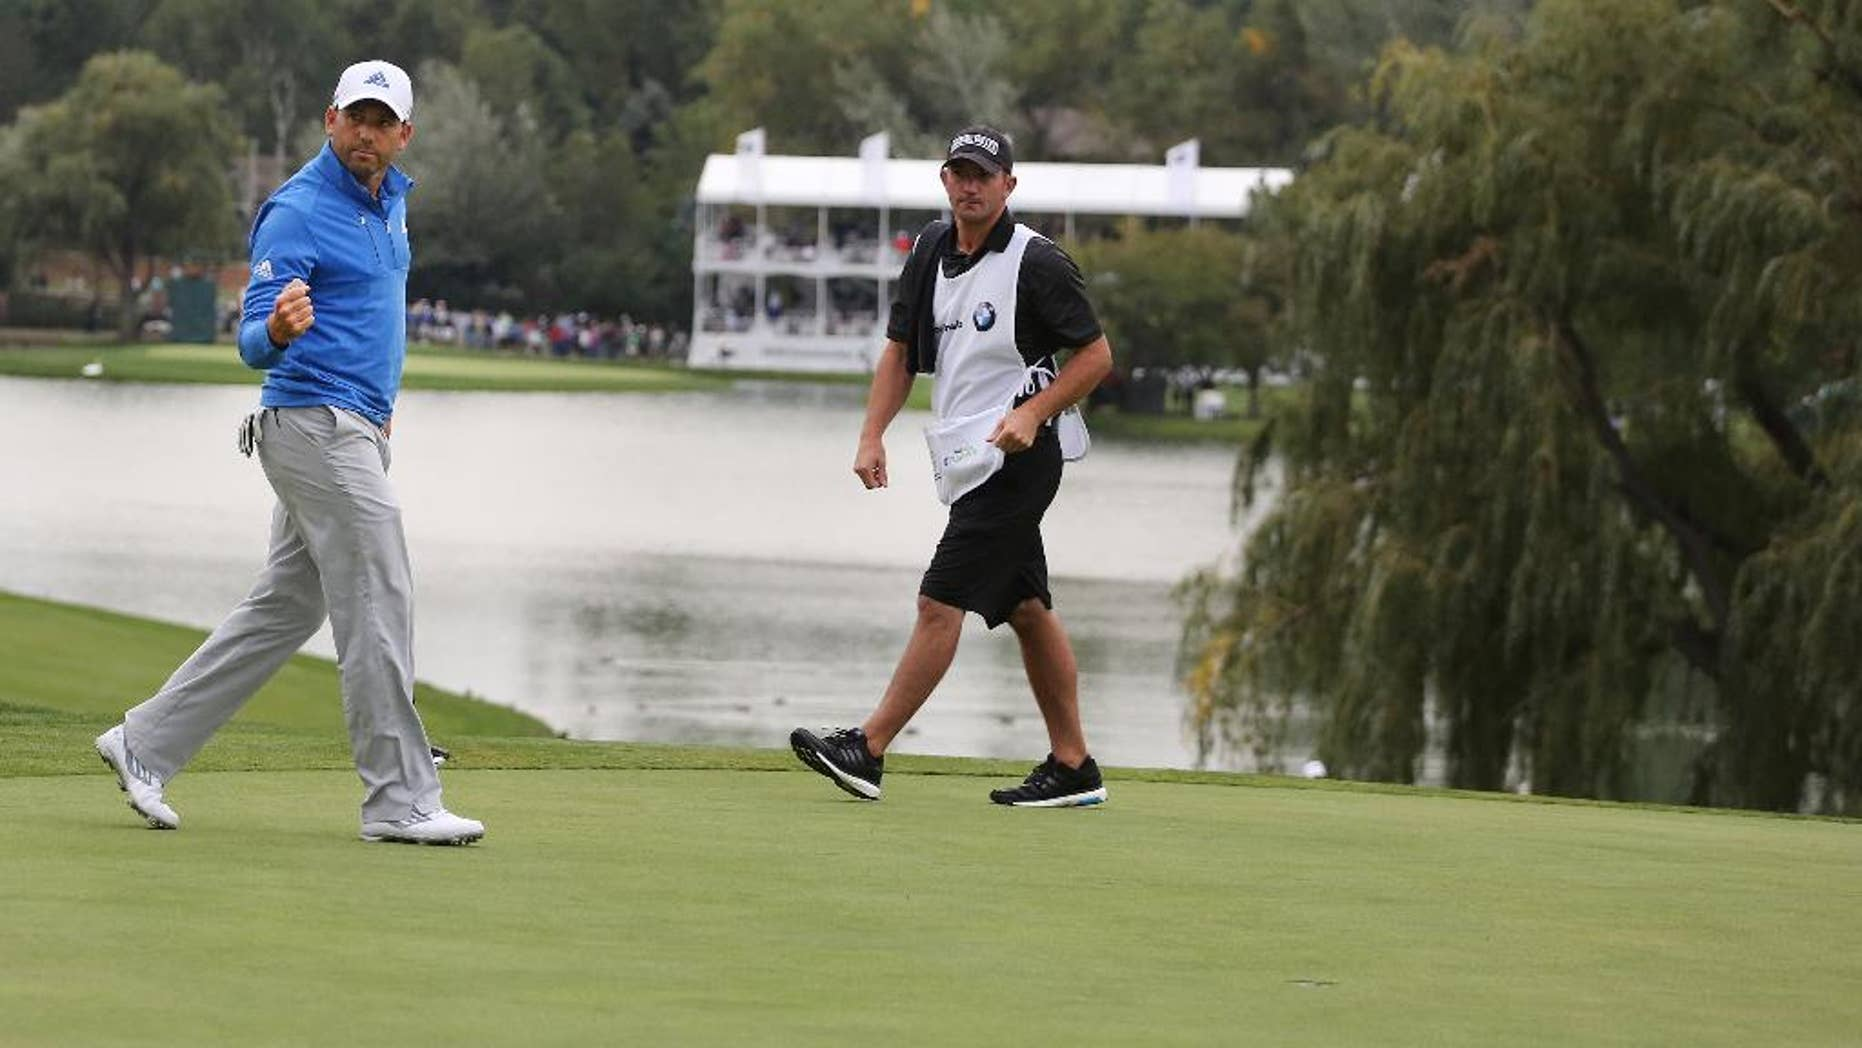 Sergio Garcia, left, of Spain, reacts after sinking his putt on the 18th hole for a birdie during the second round of the BMW Championship golf tournament at Cherry Hills Country Club in Cherry Hills Village, Colo., Friday, Sept. 5, 2014. (AP Photo/Brennan Linsley)